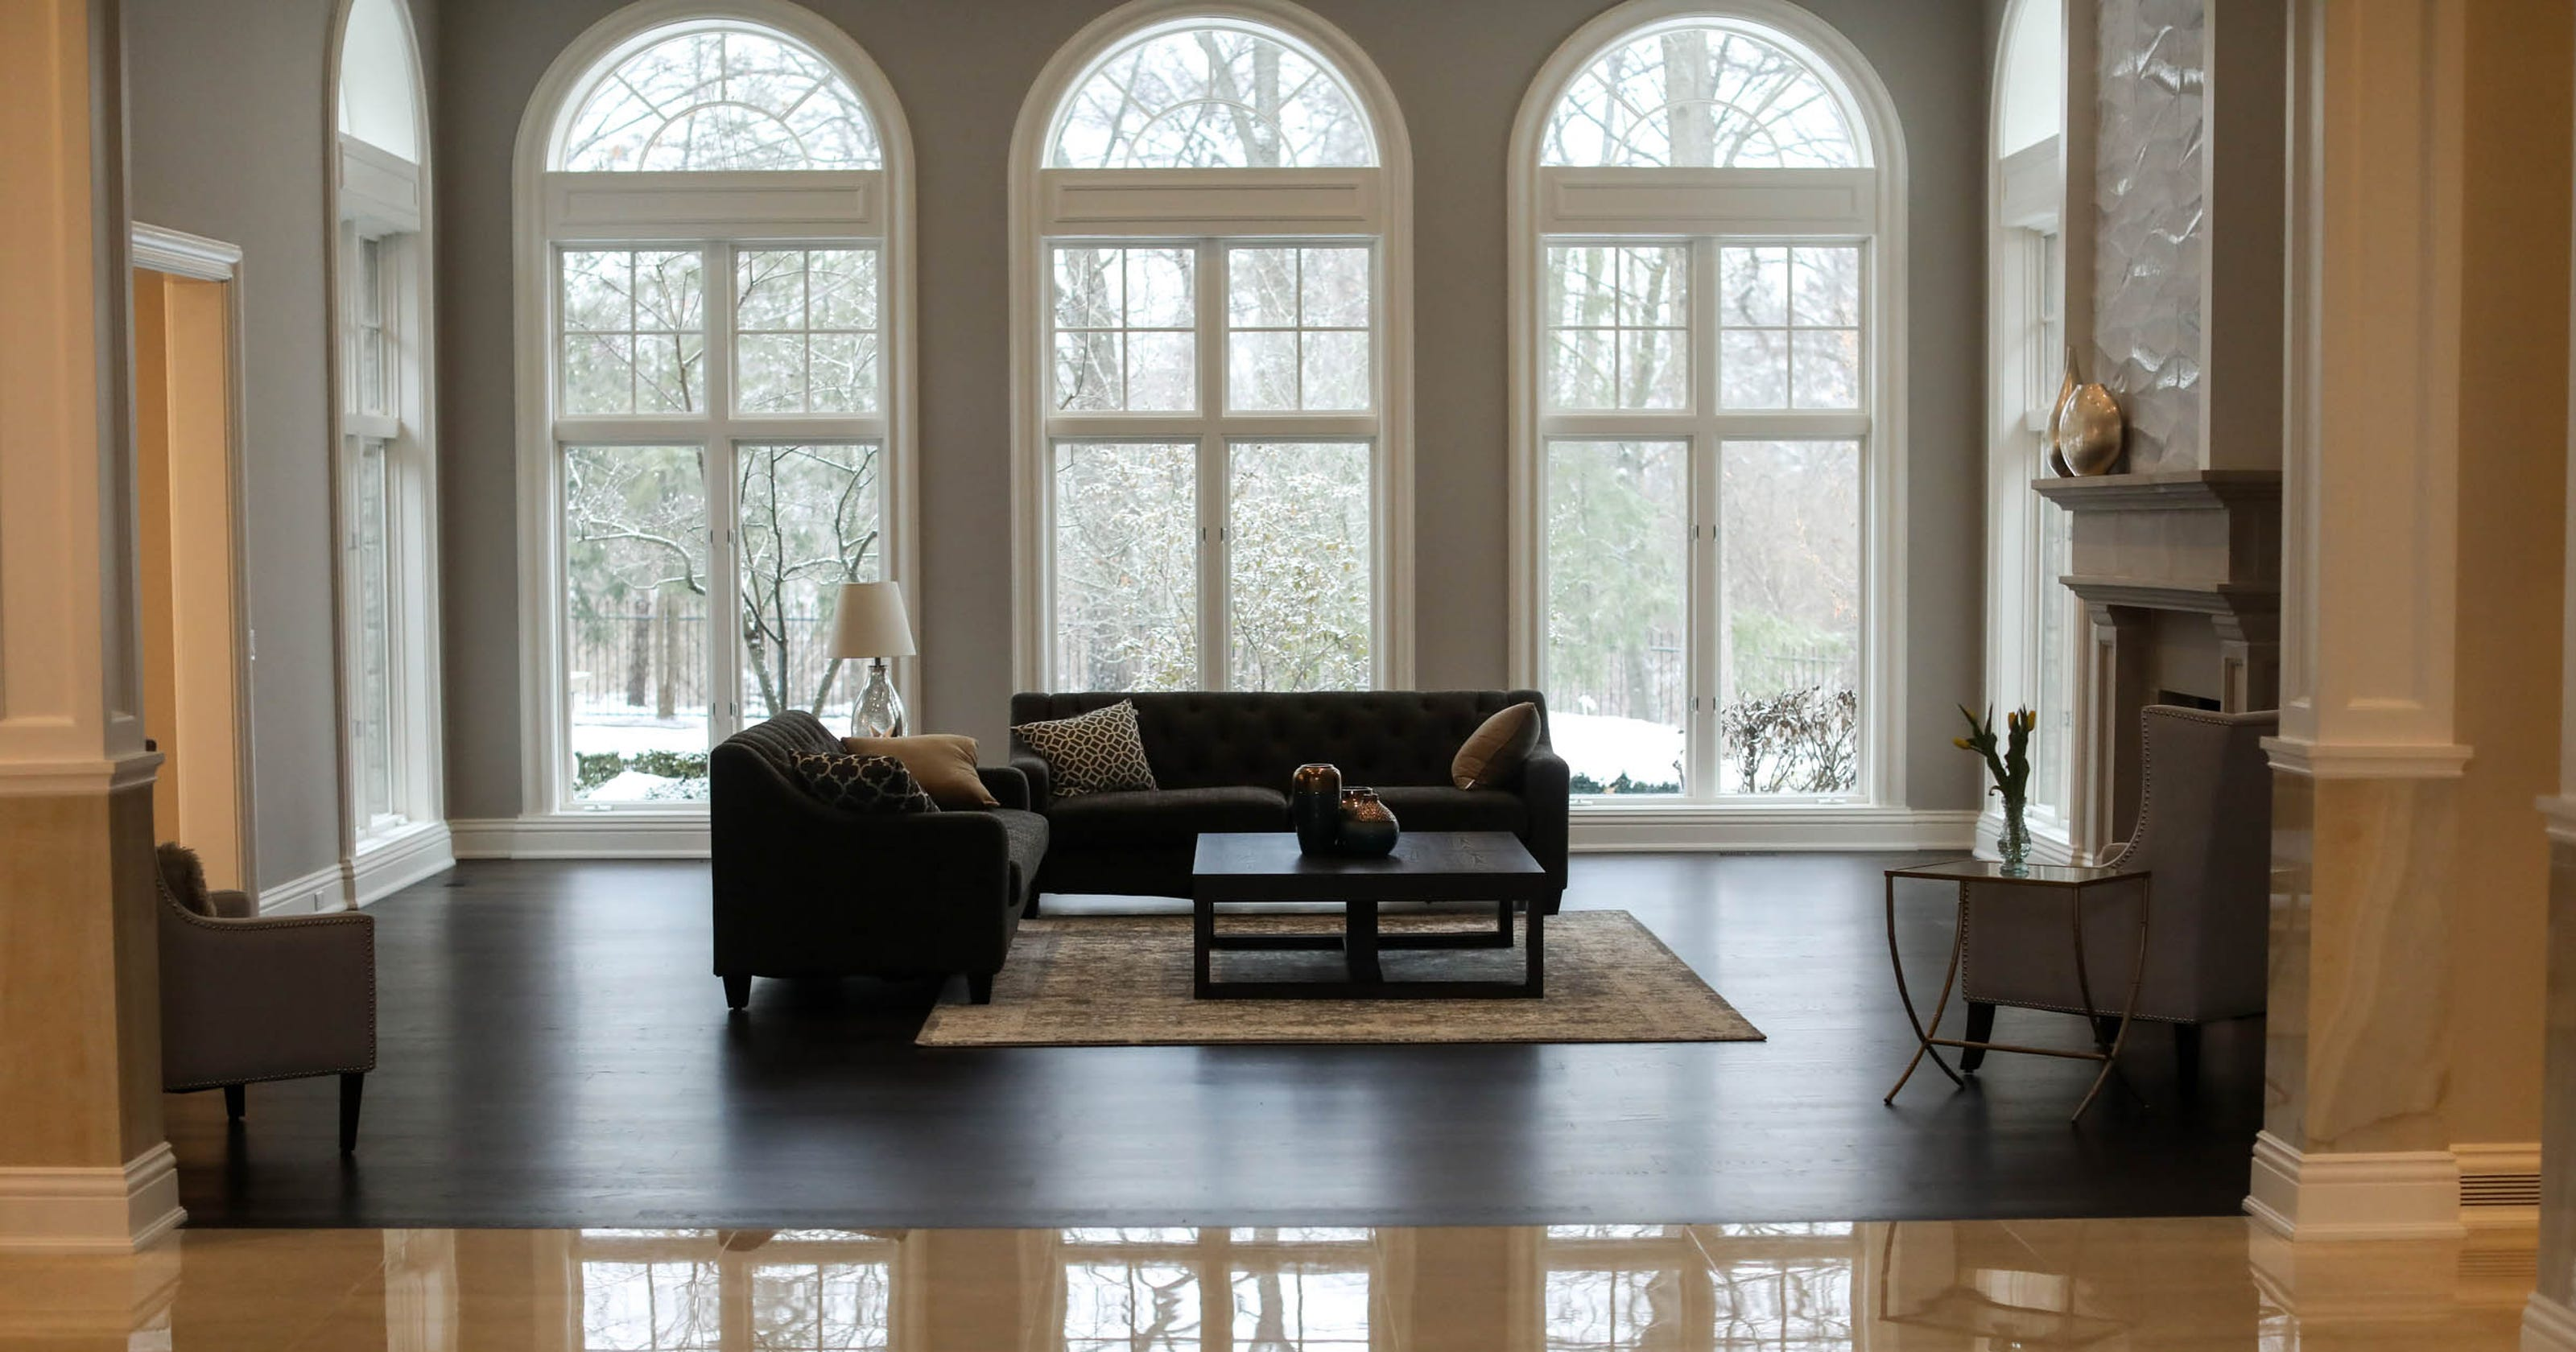 house envy stately bloomfield hills renovation awaits 1st residents. Black Bedroom Furniture Sets. Home Design Ideas